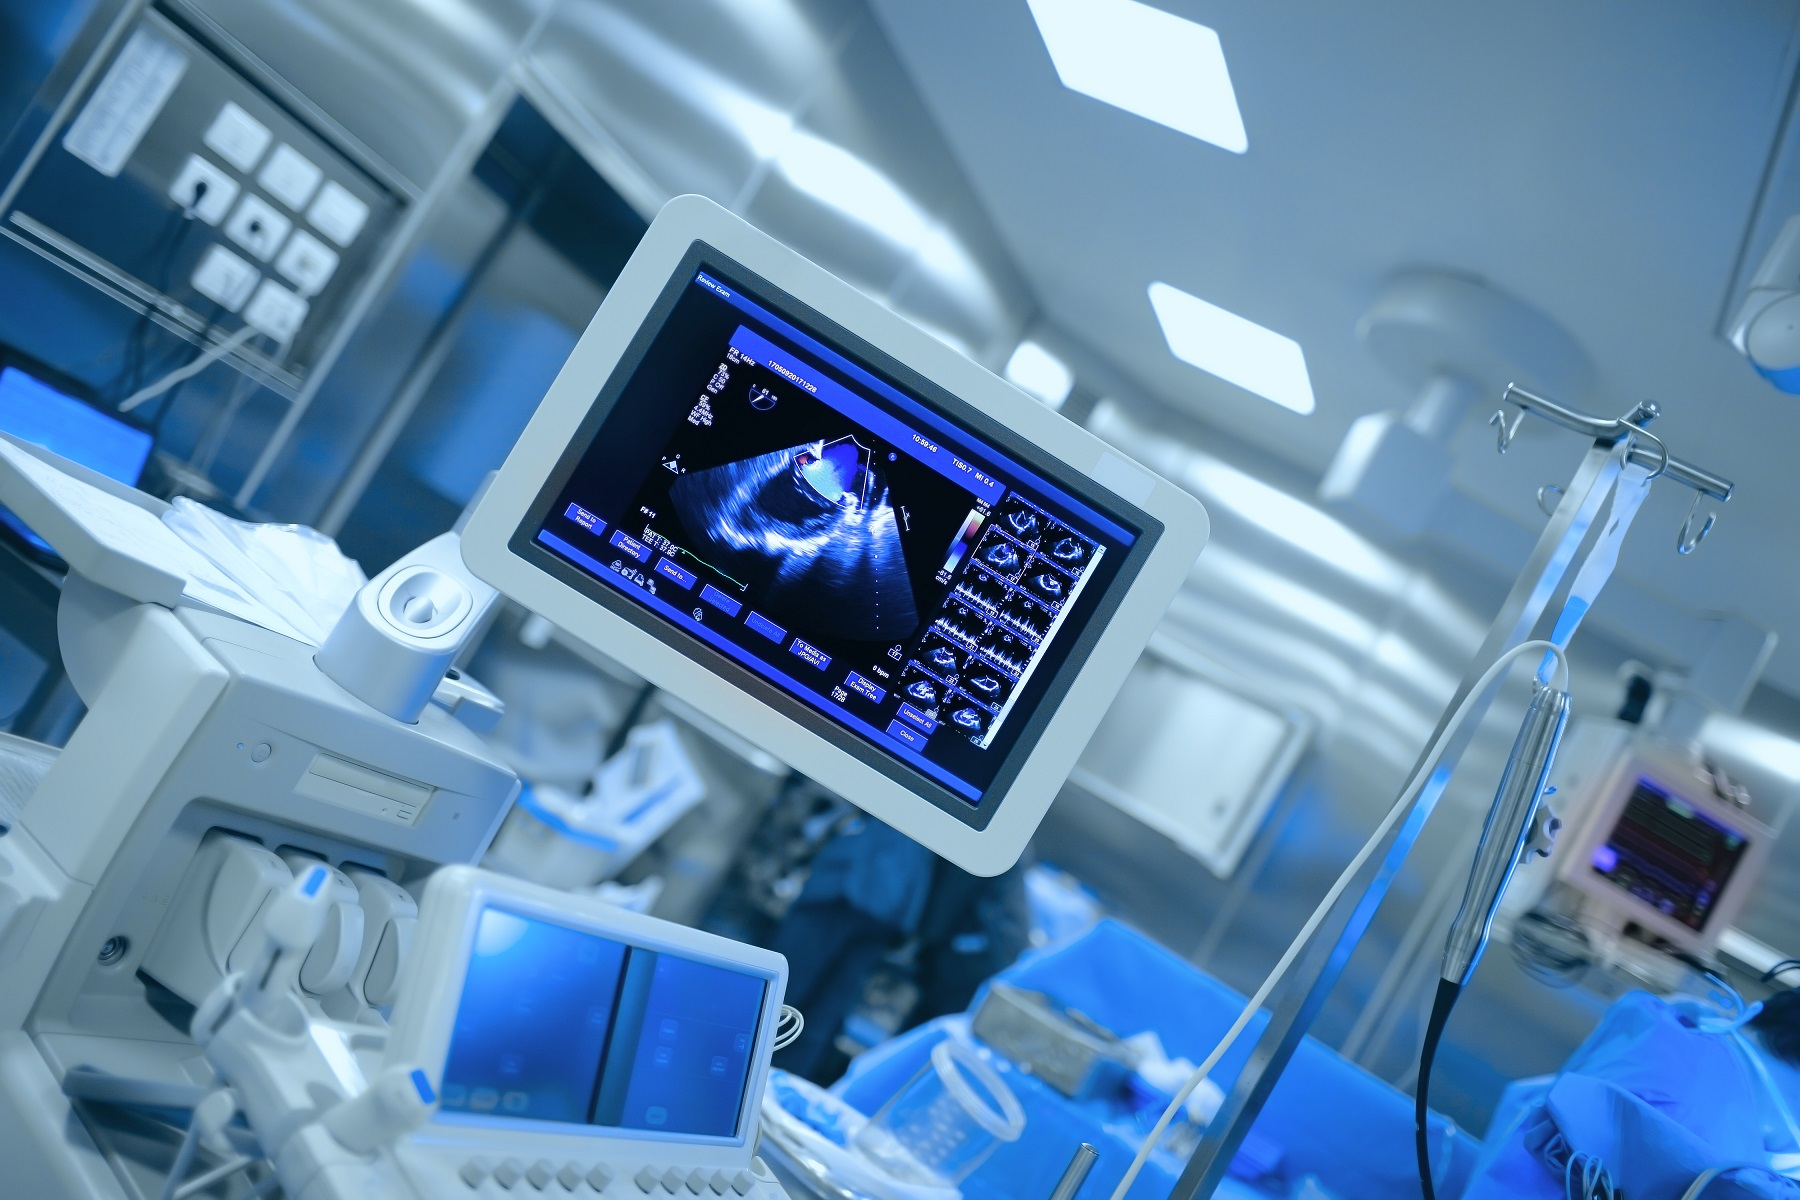 Ultrasonic monitoring of patient's heart during cardiac surgery.